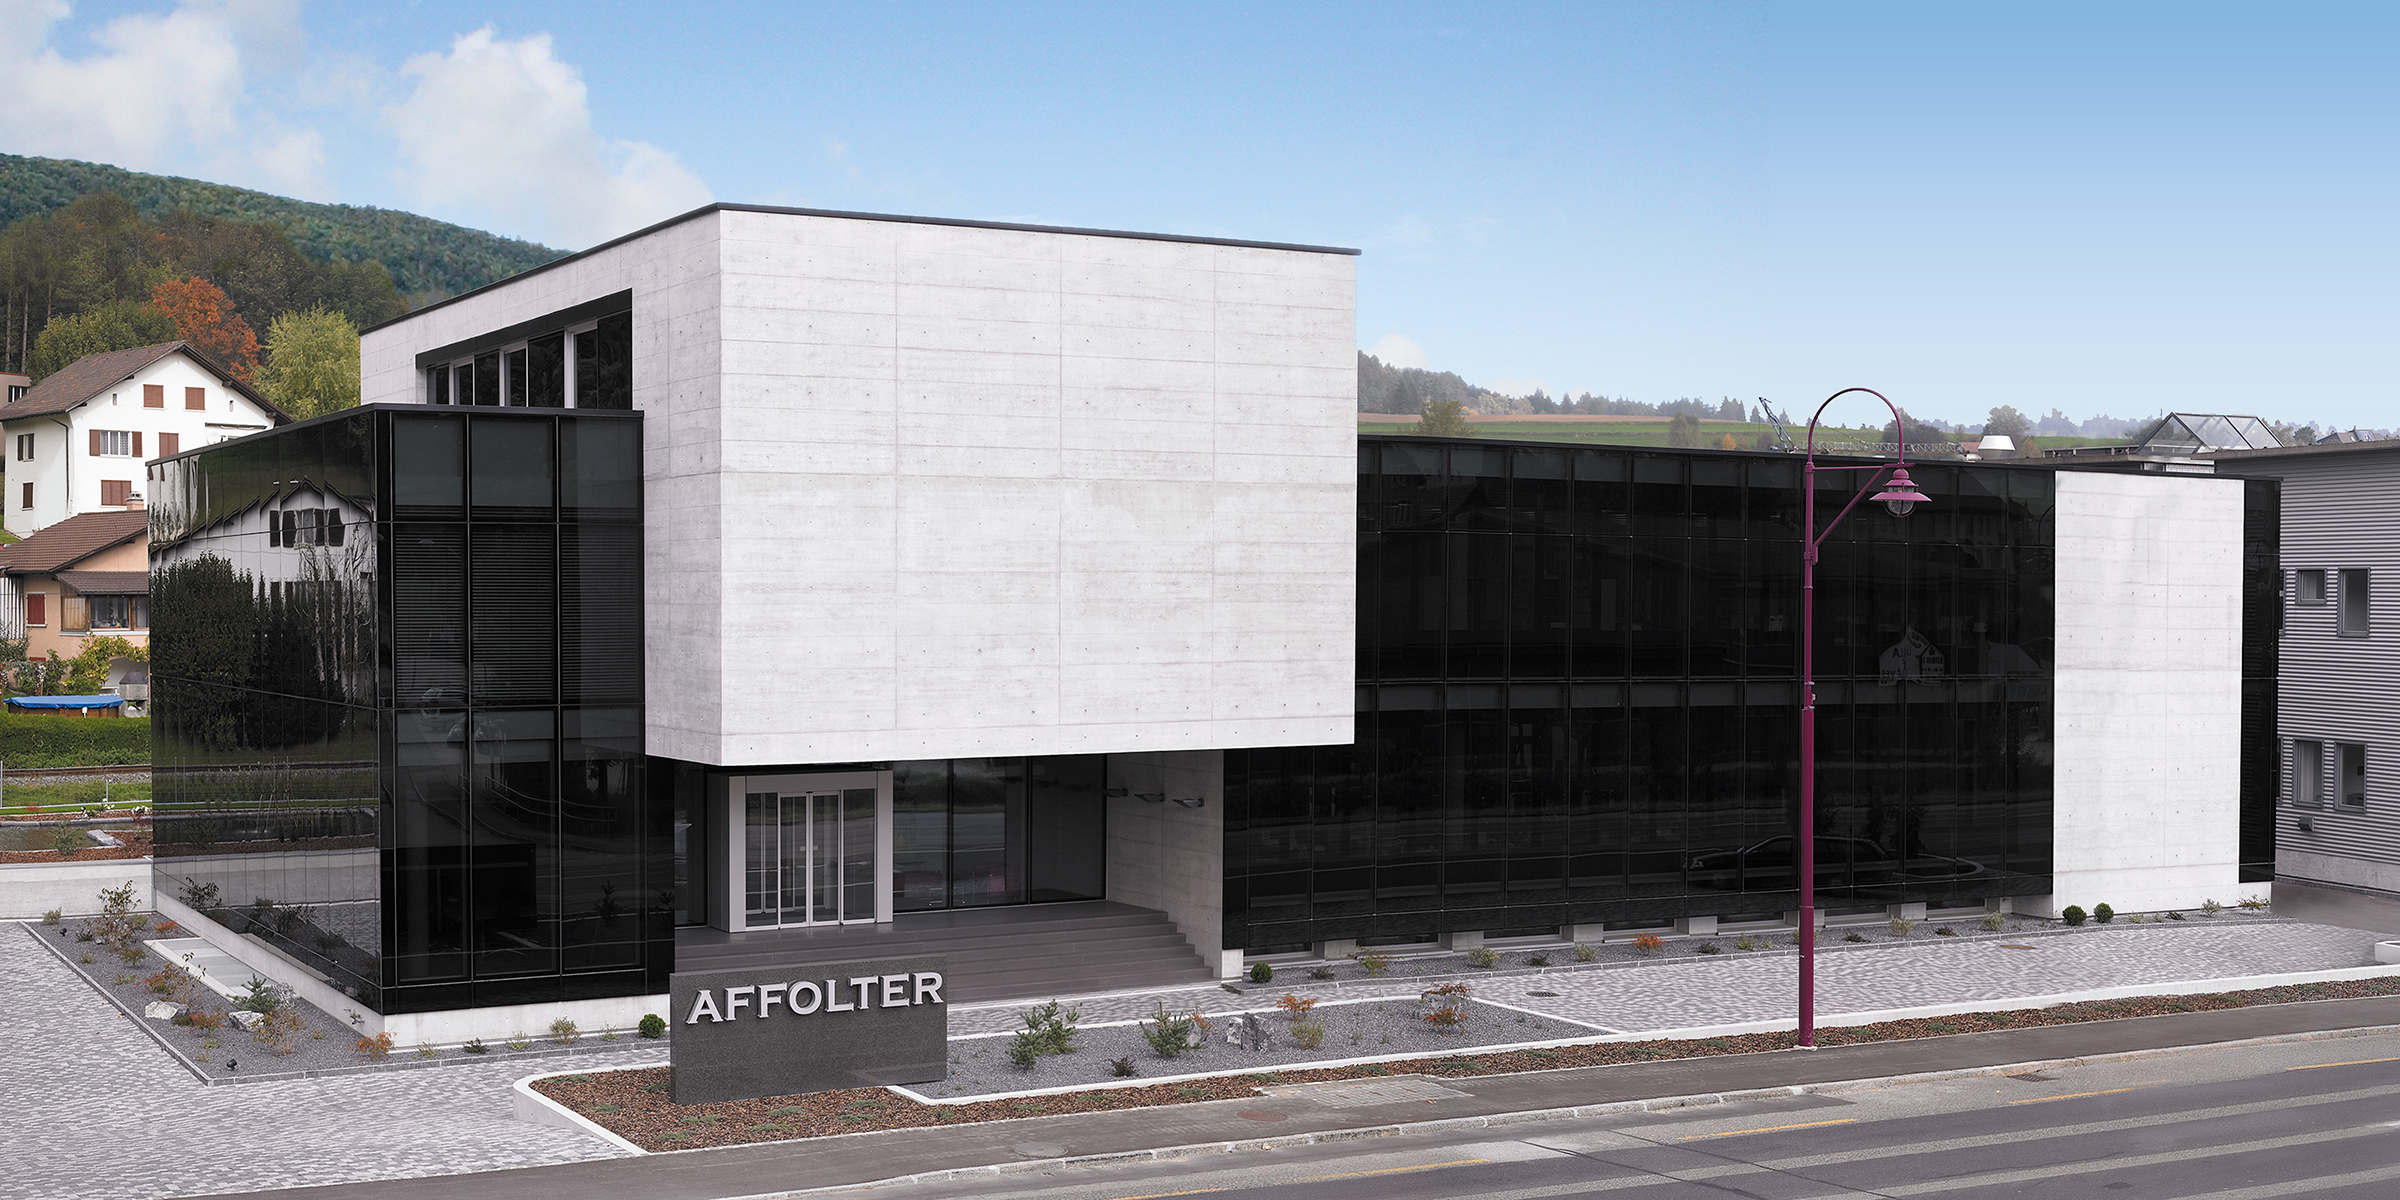 Affolter's main company building